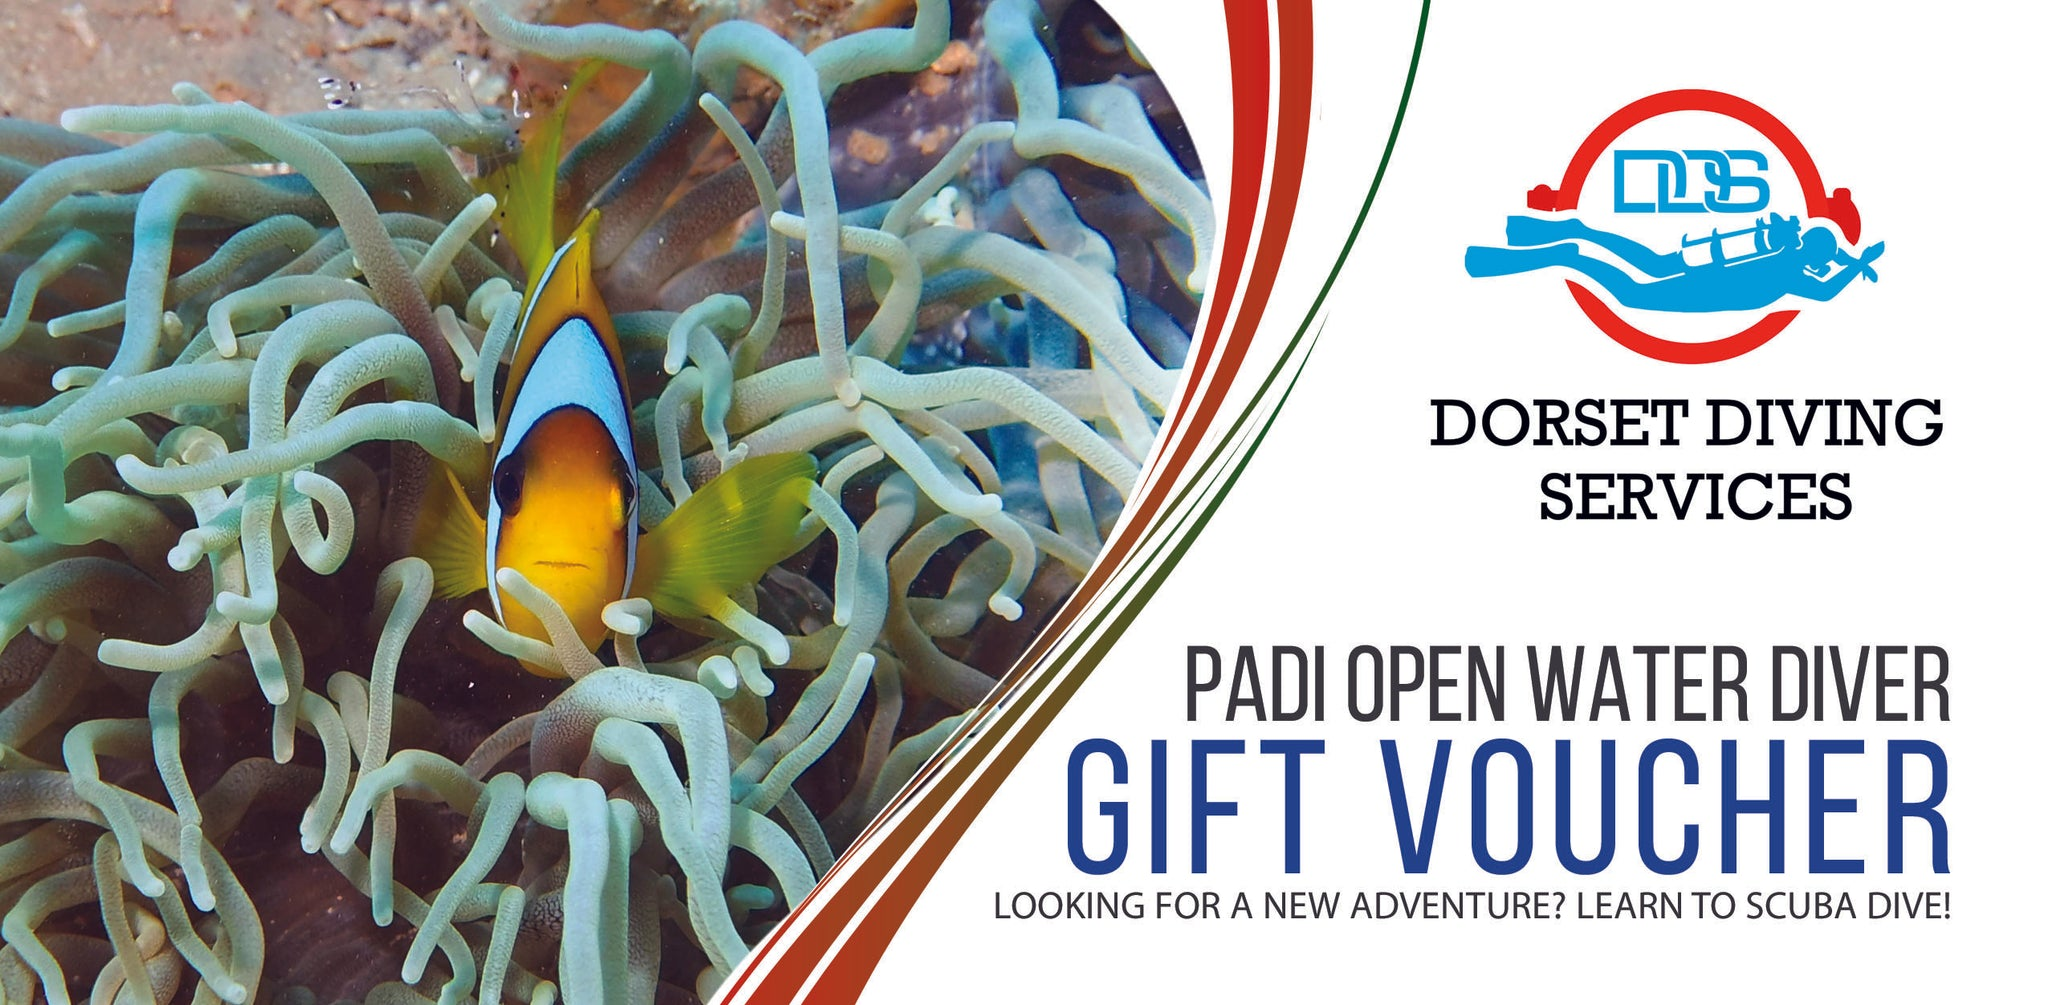 PADI Open Water Course Gift Voucher